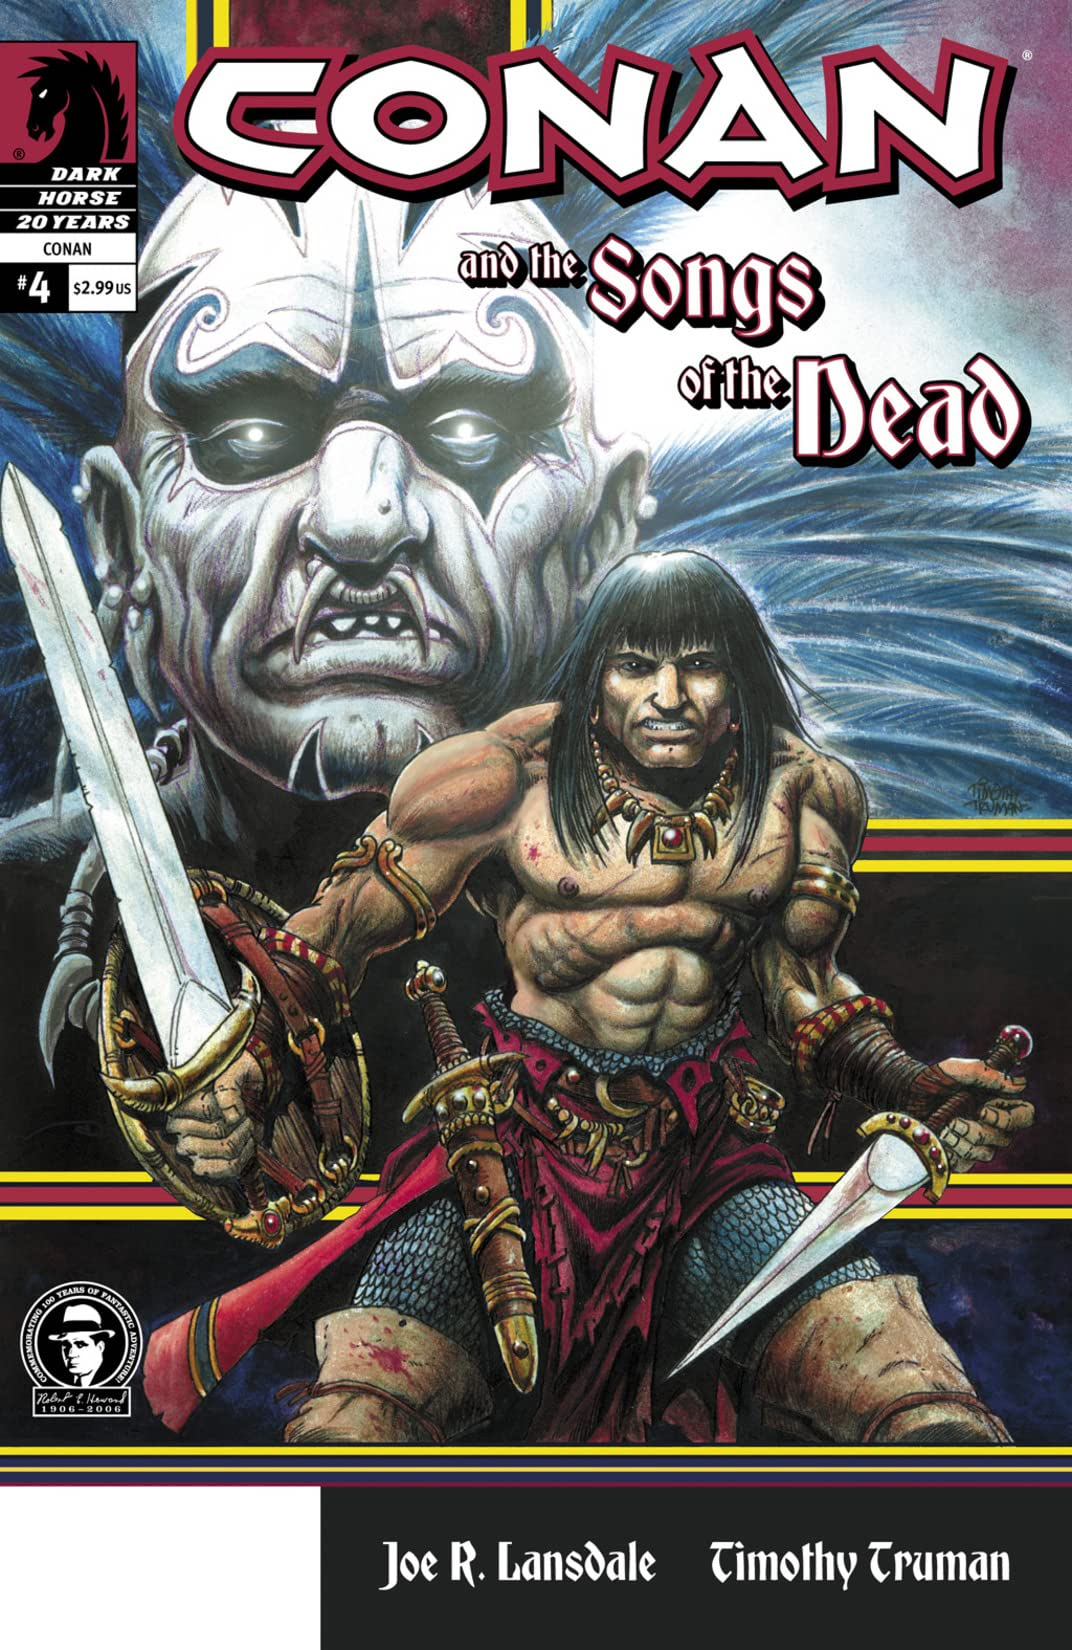 Conan and the Songs of the Dead #4